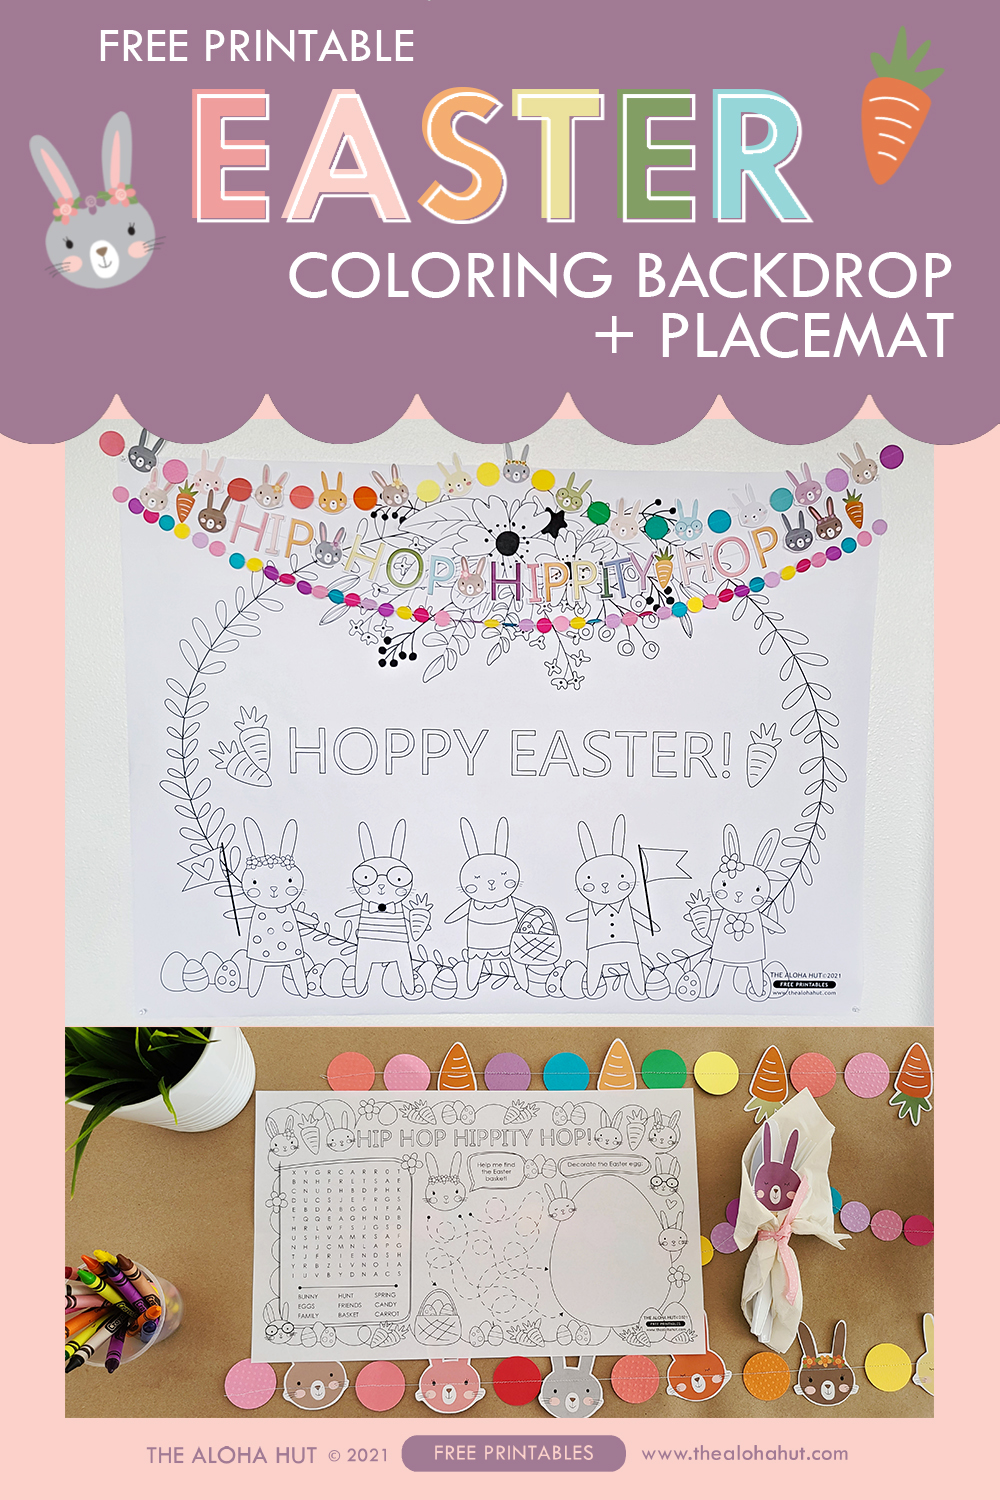 Easter Coloring Backdrop + Placemat free printables by the Aloha Hut